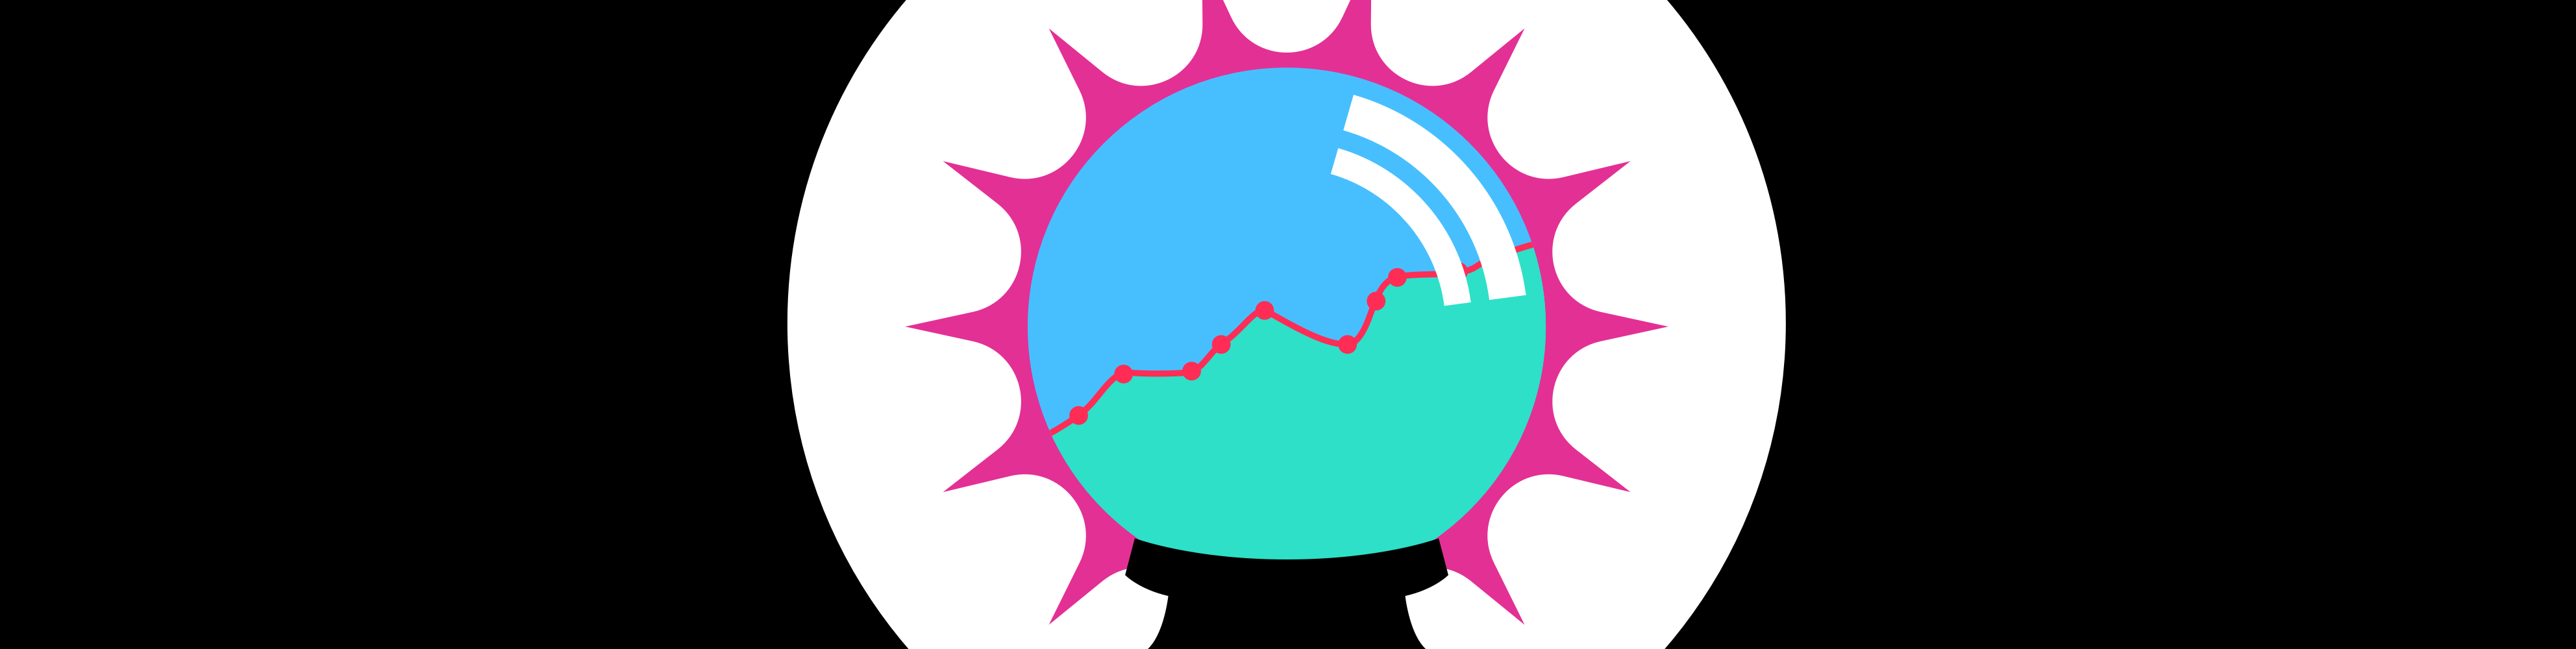 Illustrated future globe with graph